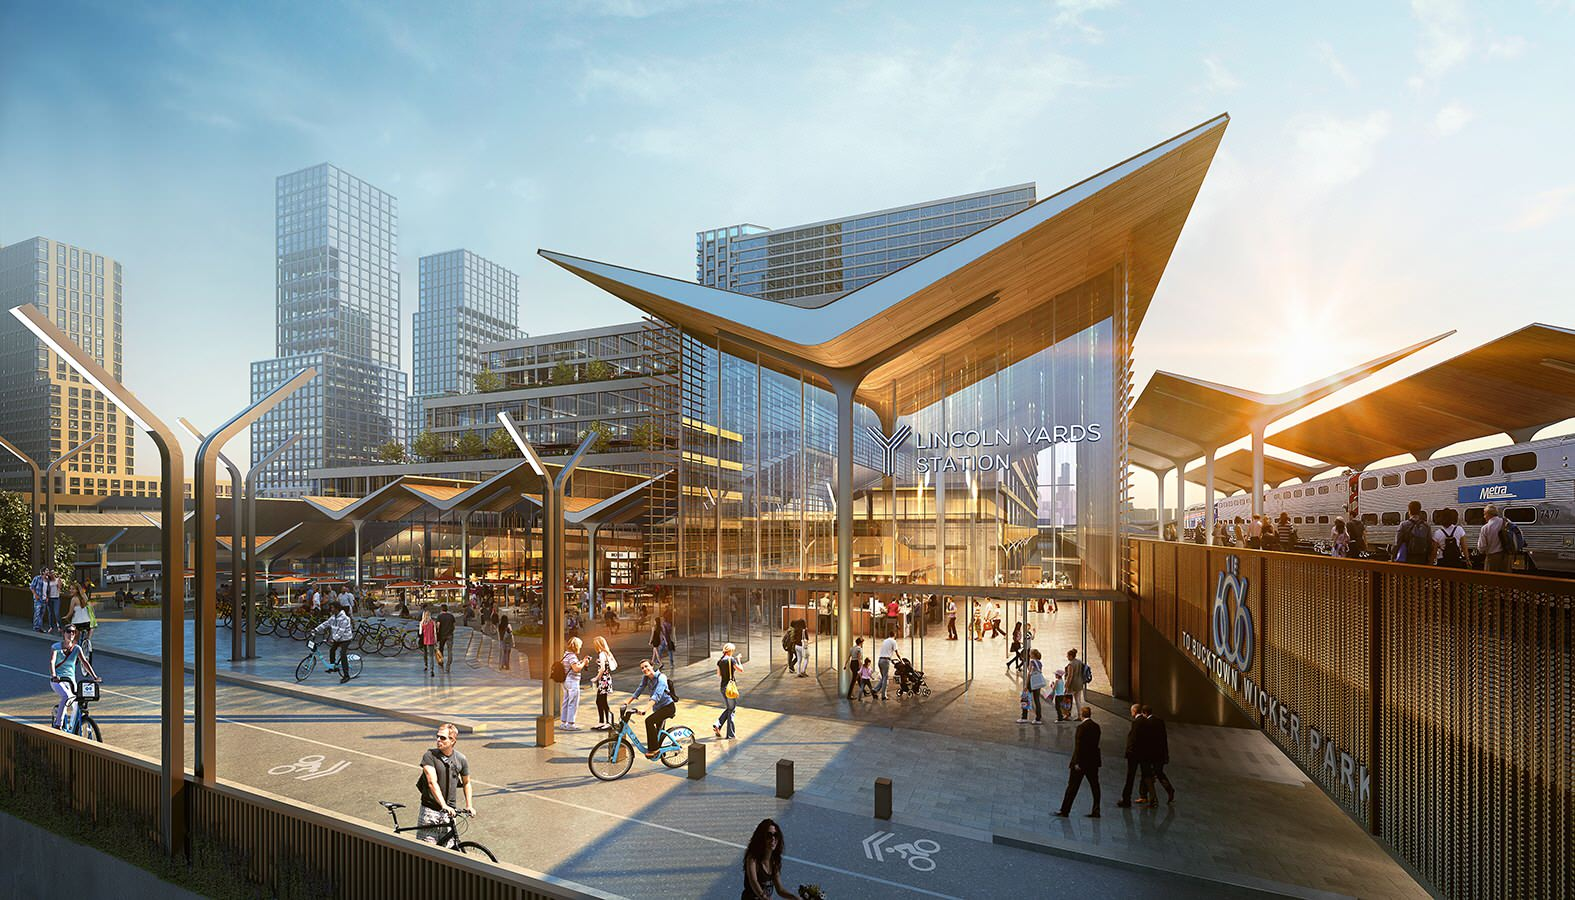 The 5 biggest projects that will change Chicago in the next decade